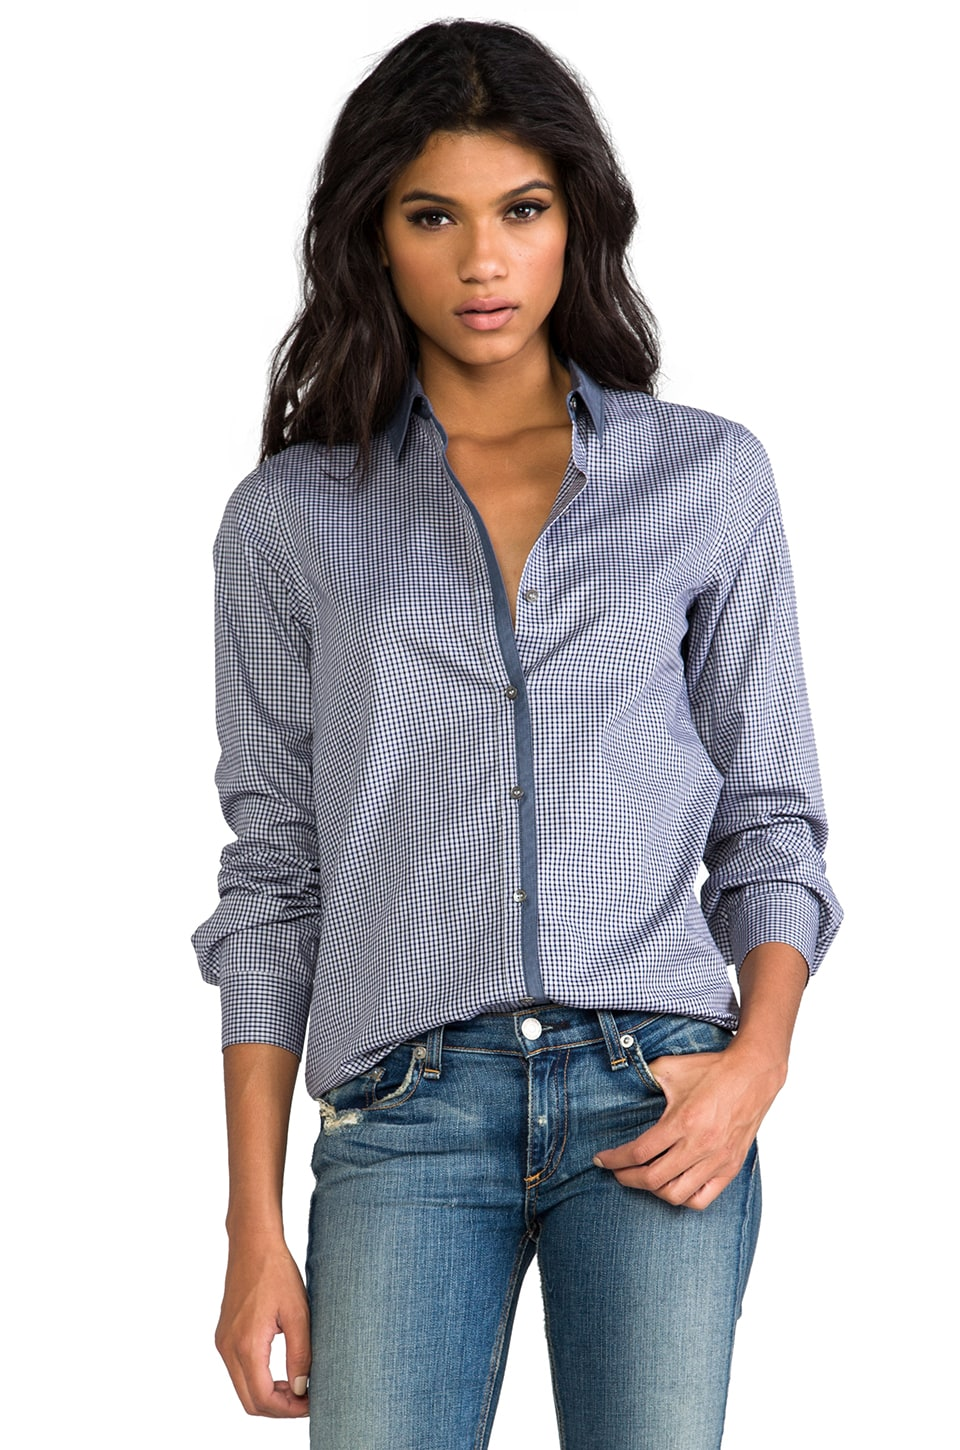 Theory Yasa C Chambray Shirt in Grey/Navy